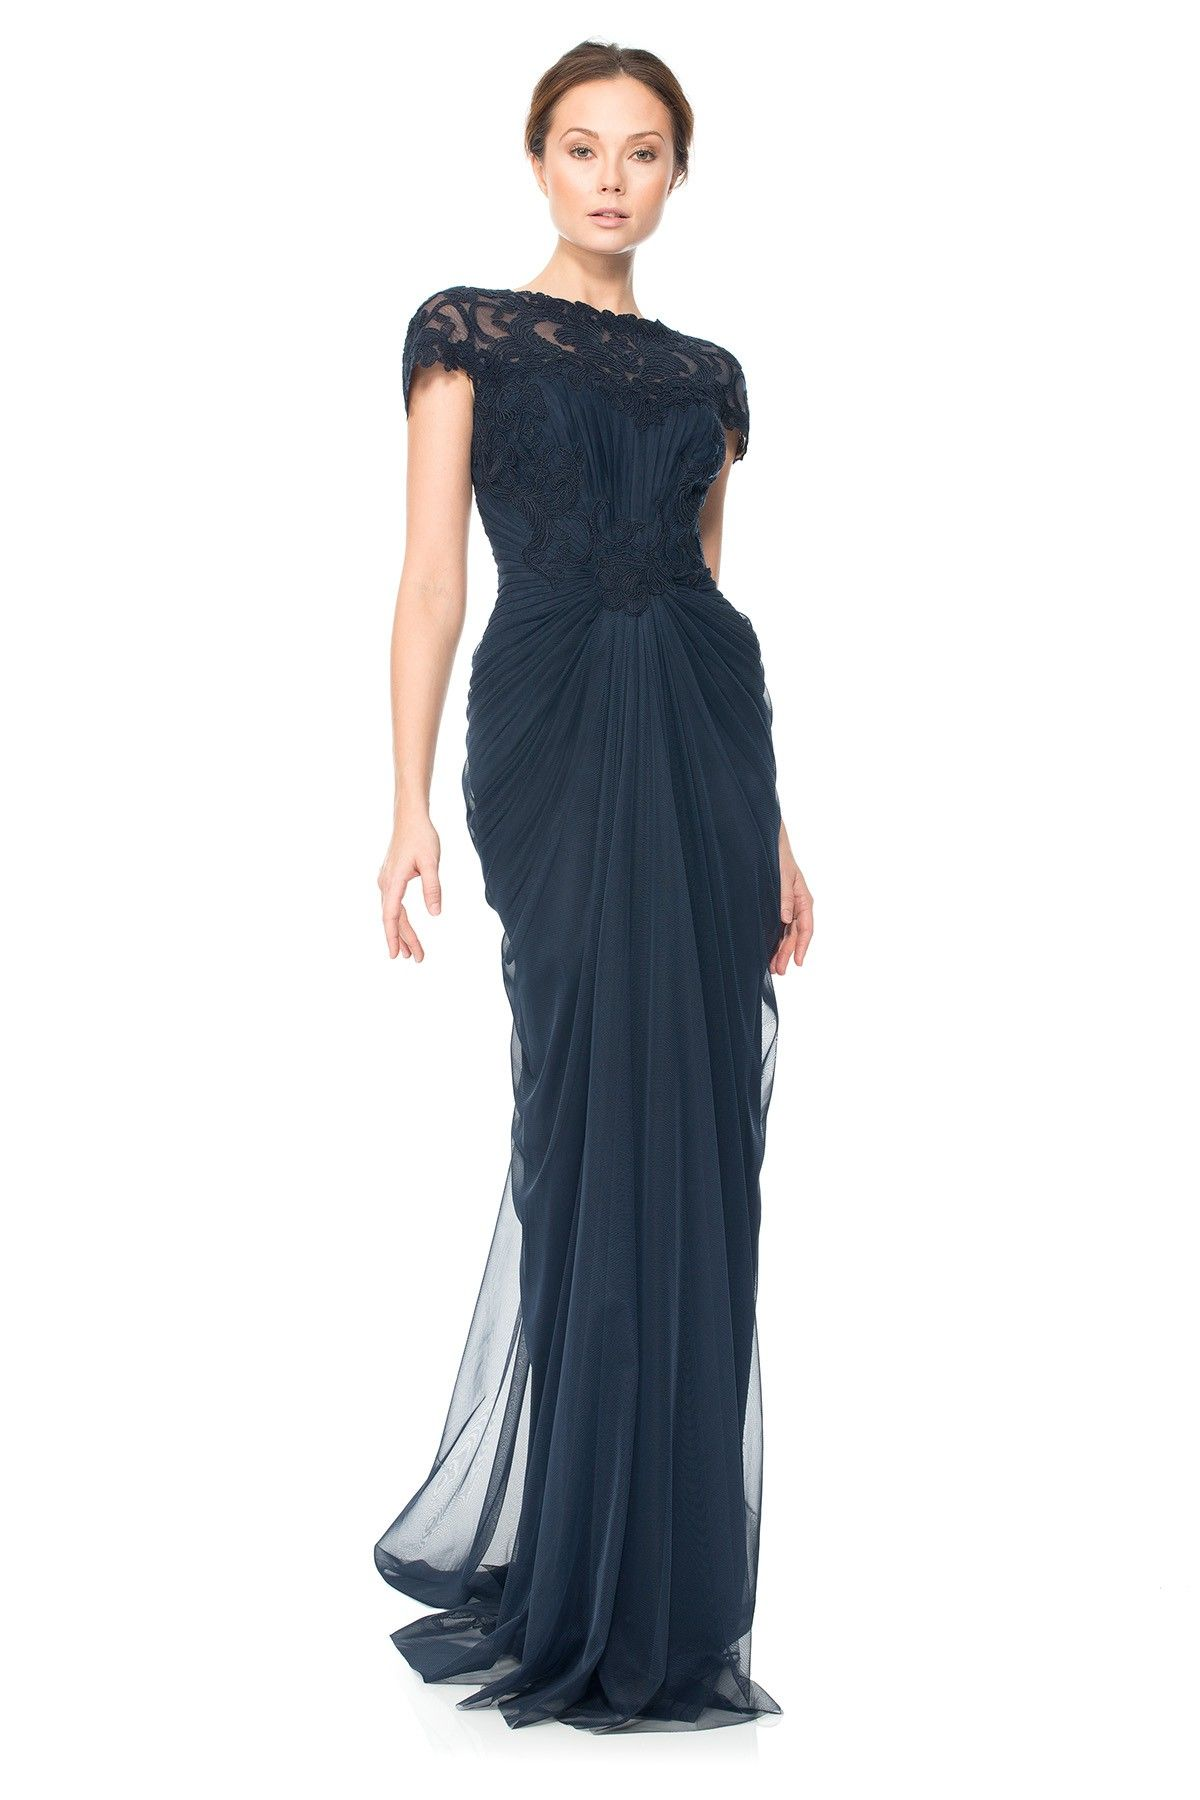 The Mother of Bride Dresses Tadashi Shoji Nordstrom